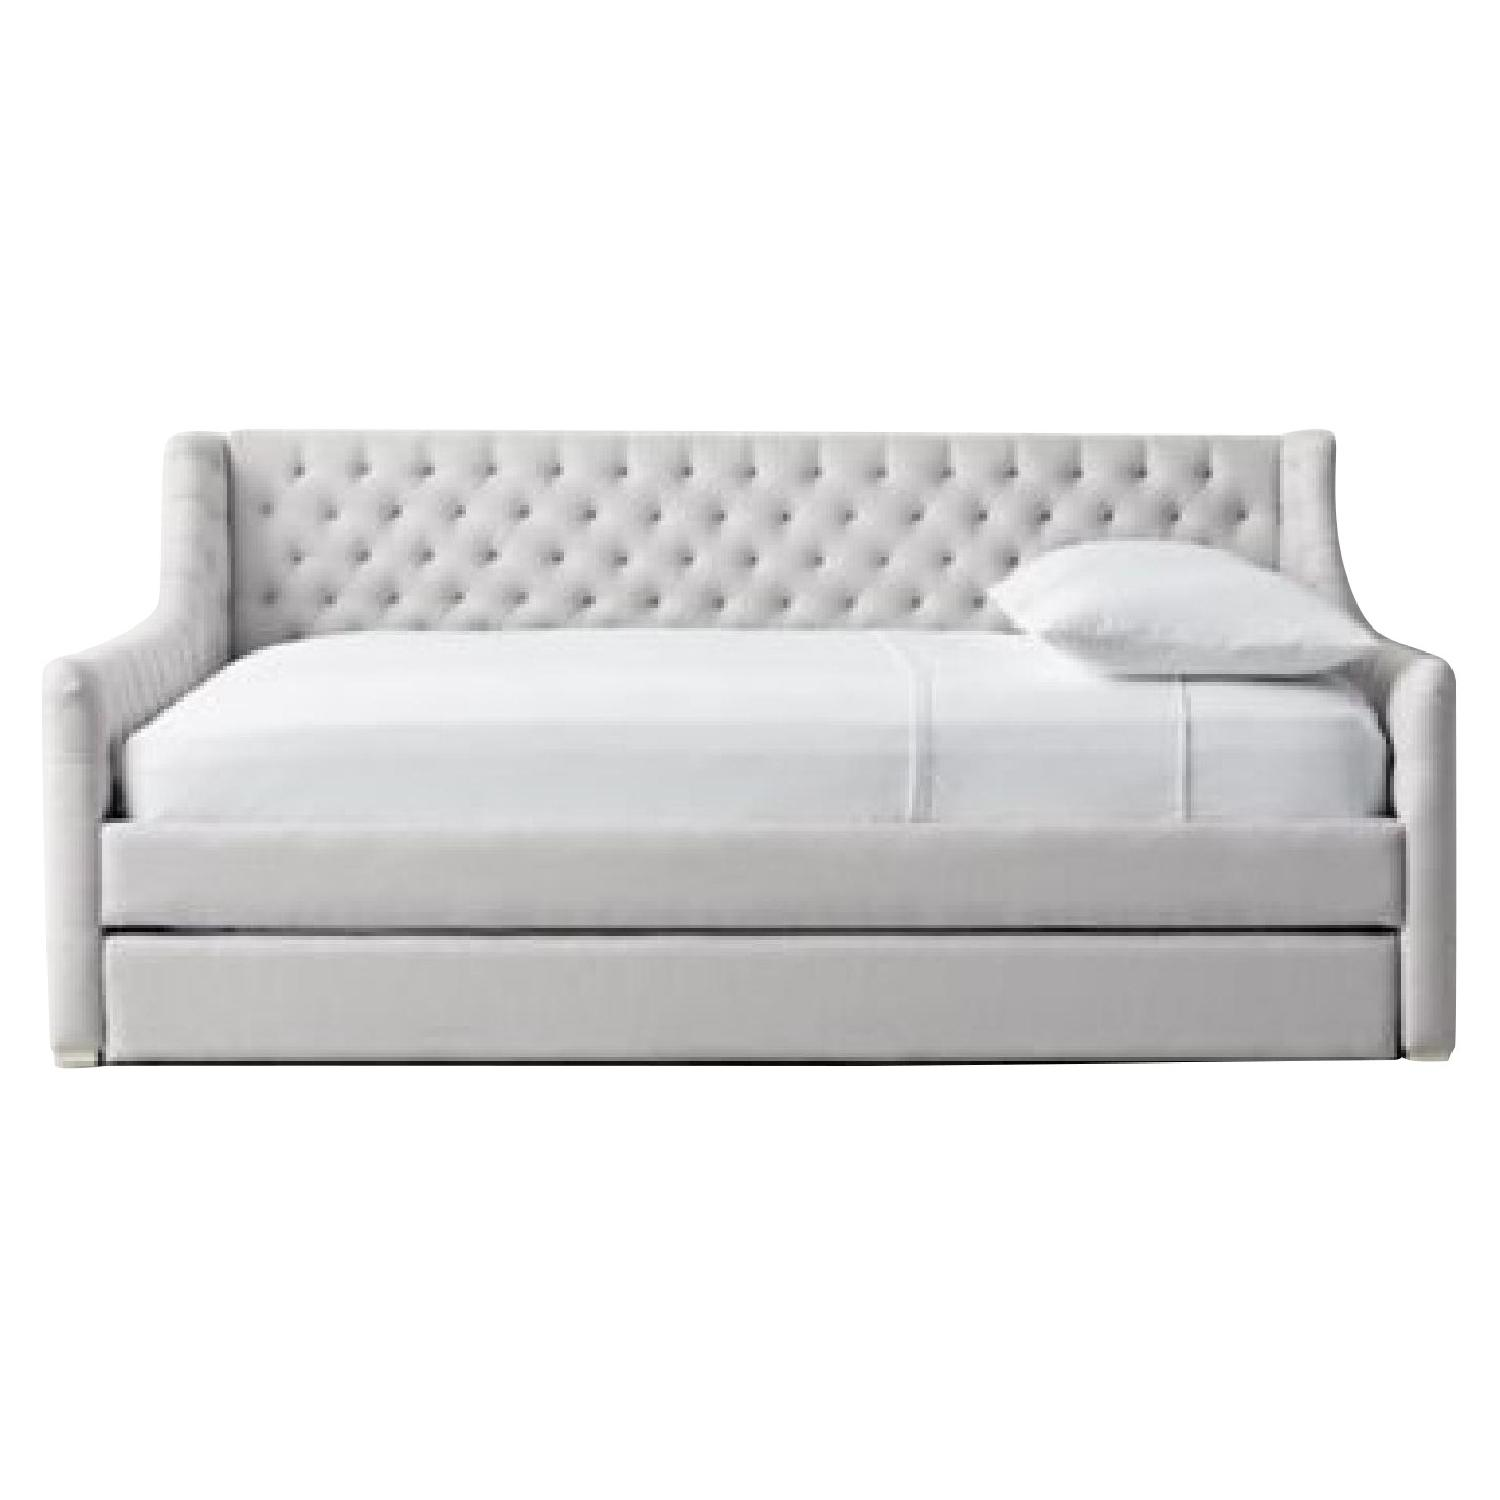 Restoration Hardware Daybed w/ Trundle